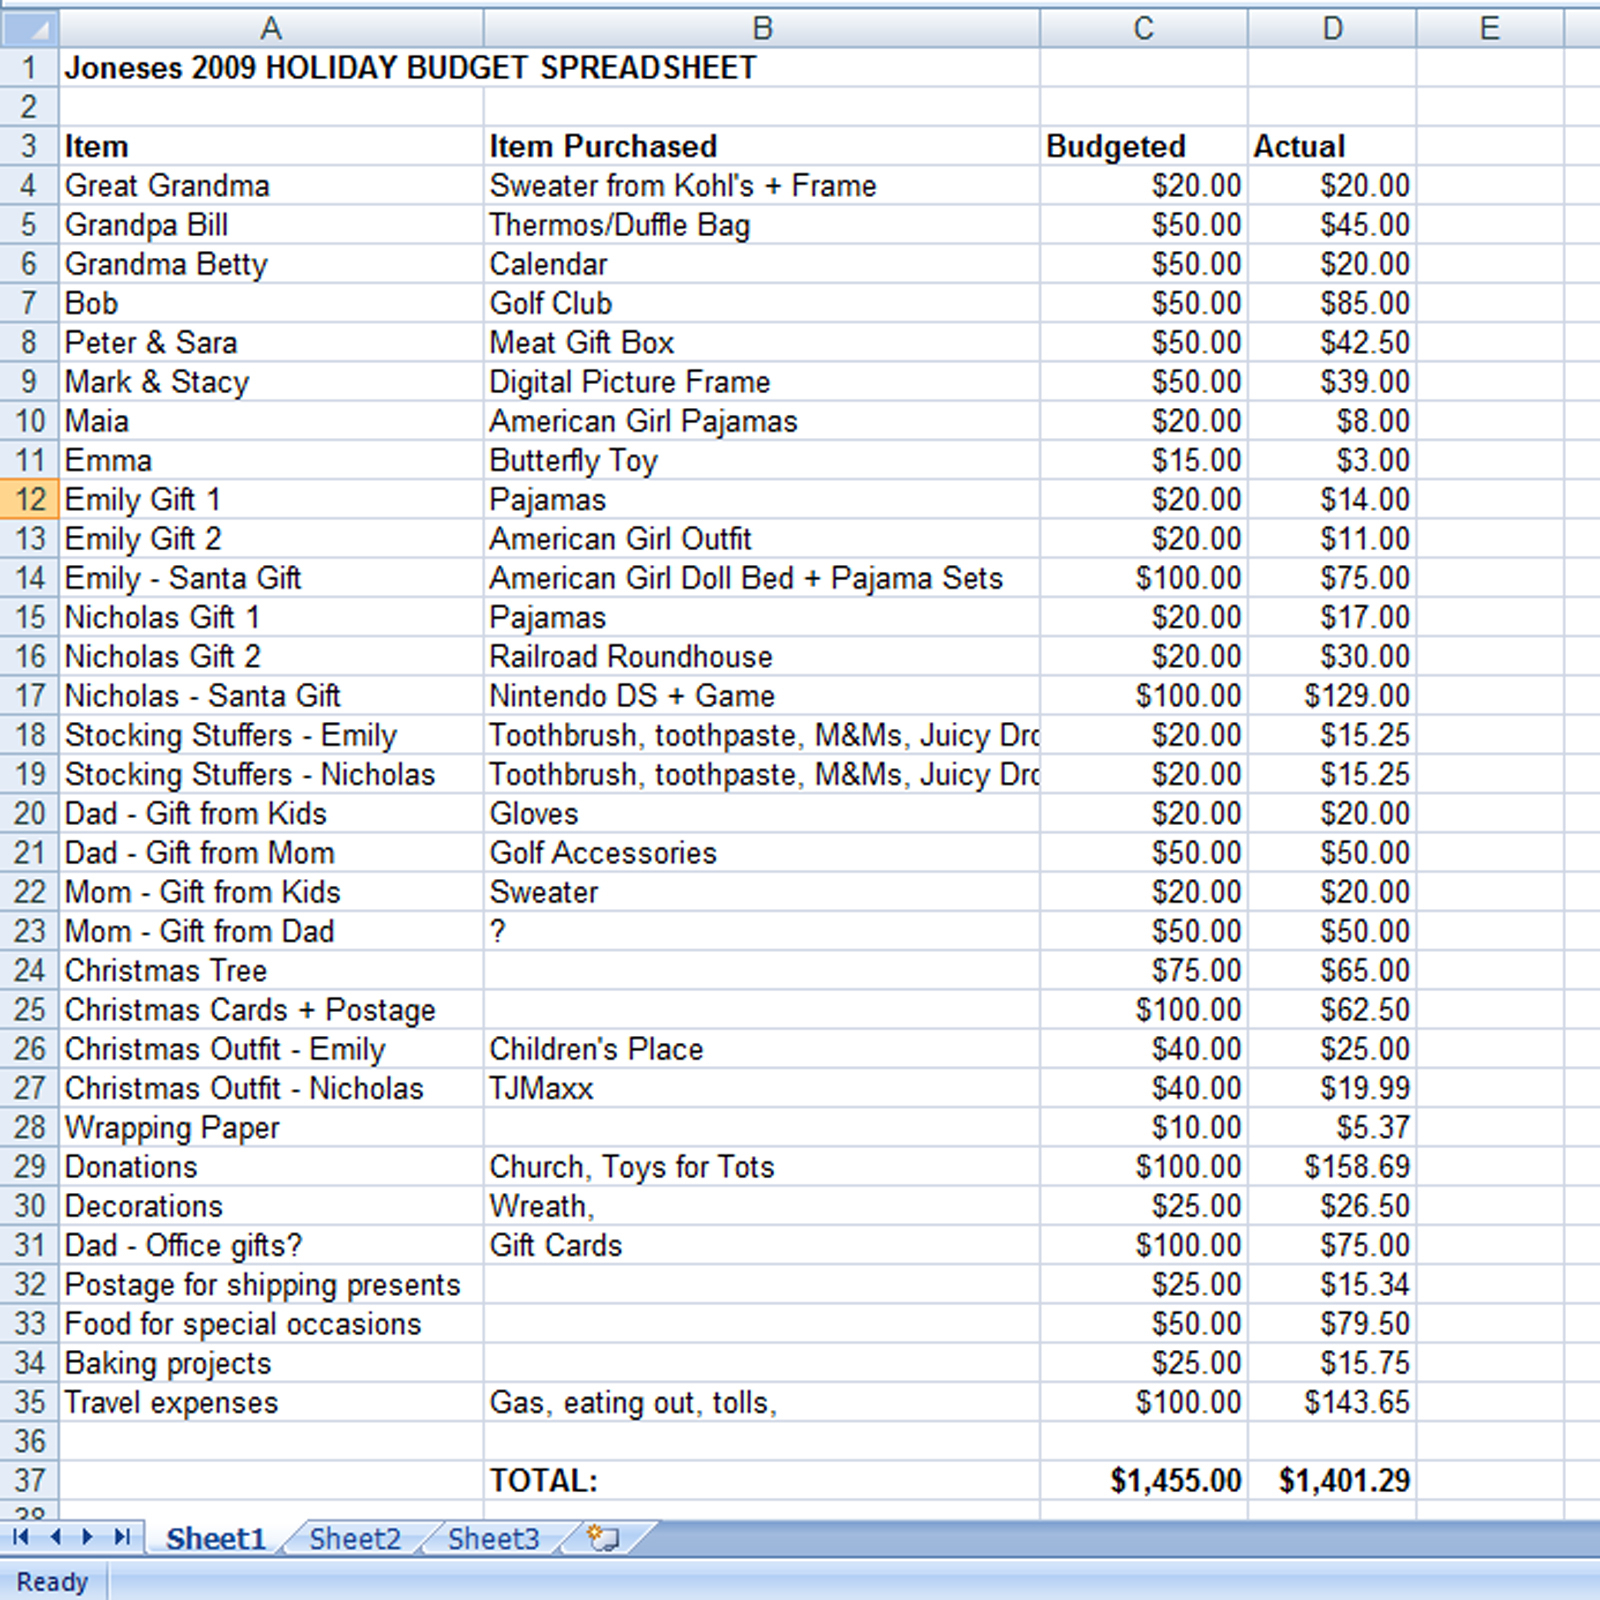 Expenses Spreadsheet Throughout Create A Holiday Gift Expense Spreadsheet  Mommysavers